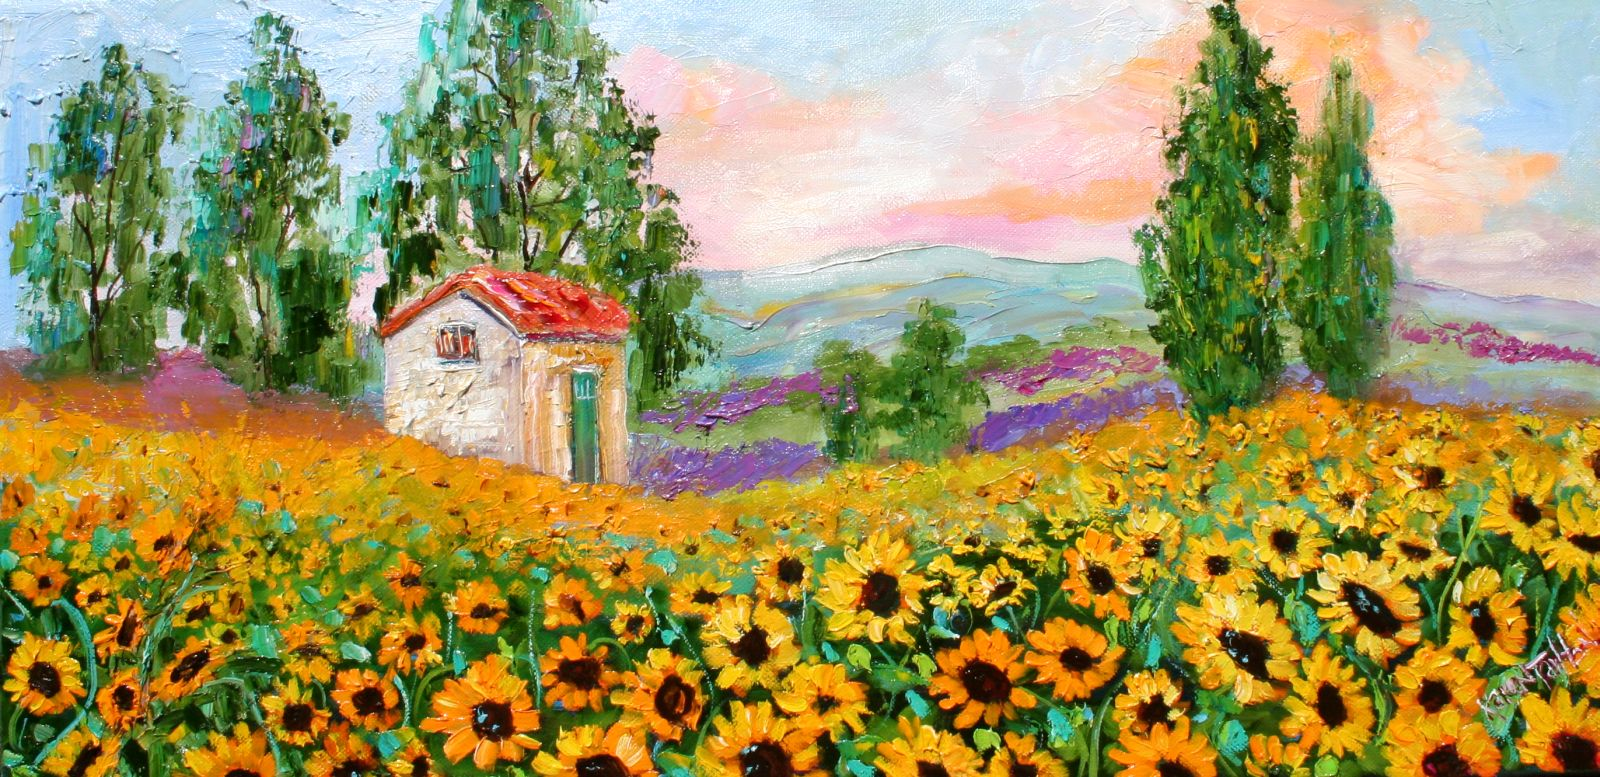 Karen Tarlton - Page 3 Tarlton+Original+Oil+Painting+Provence+Sunflowers+art+eBay+027i